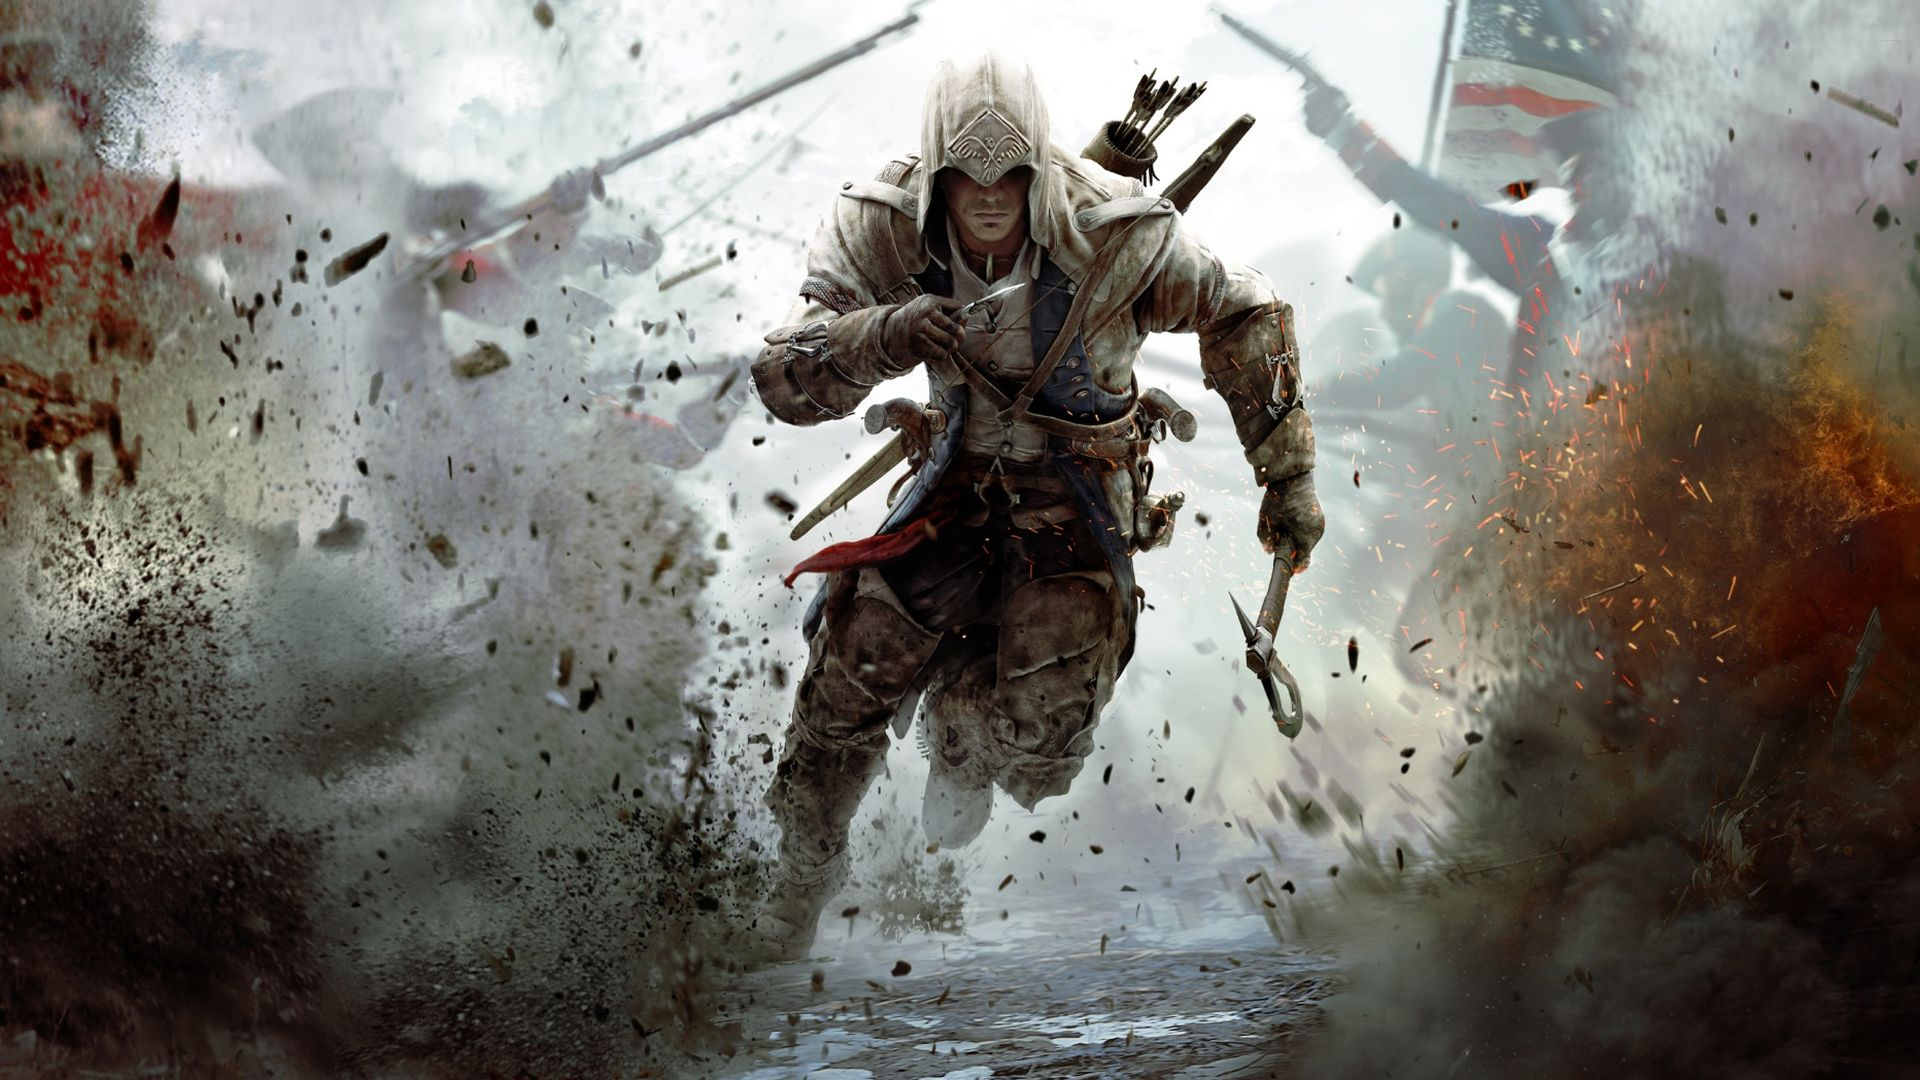 assassins_creed_3_connor_free_running-wallpaper-1920x1080.jpg